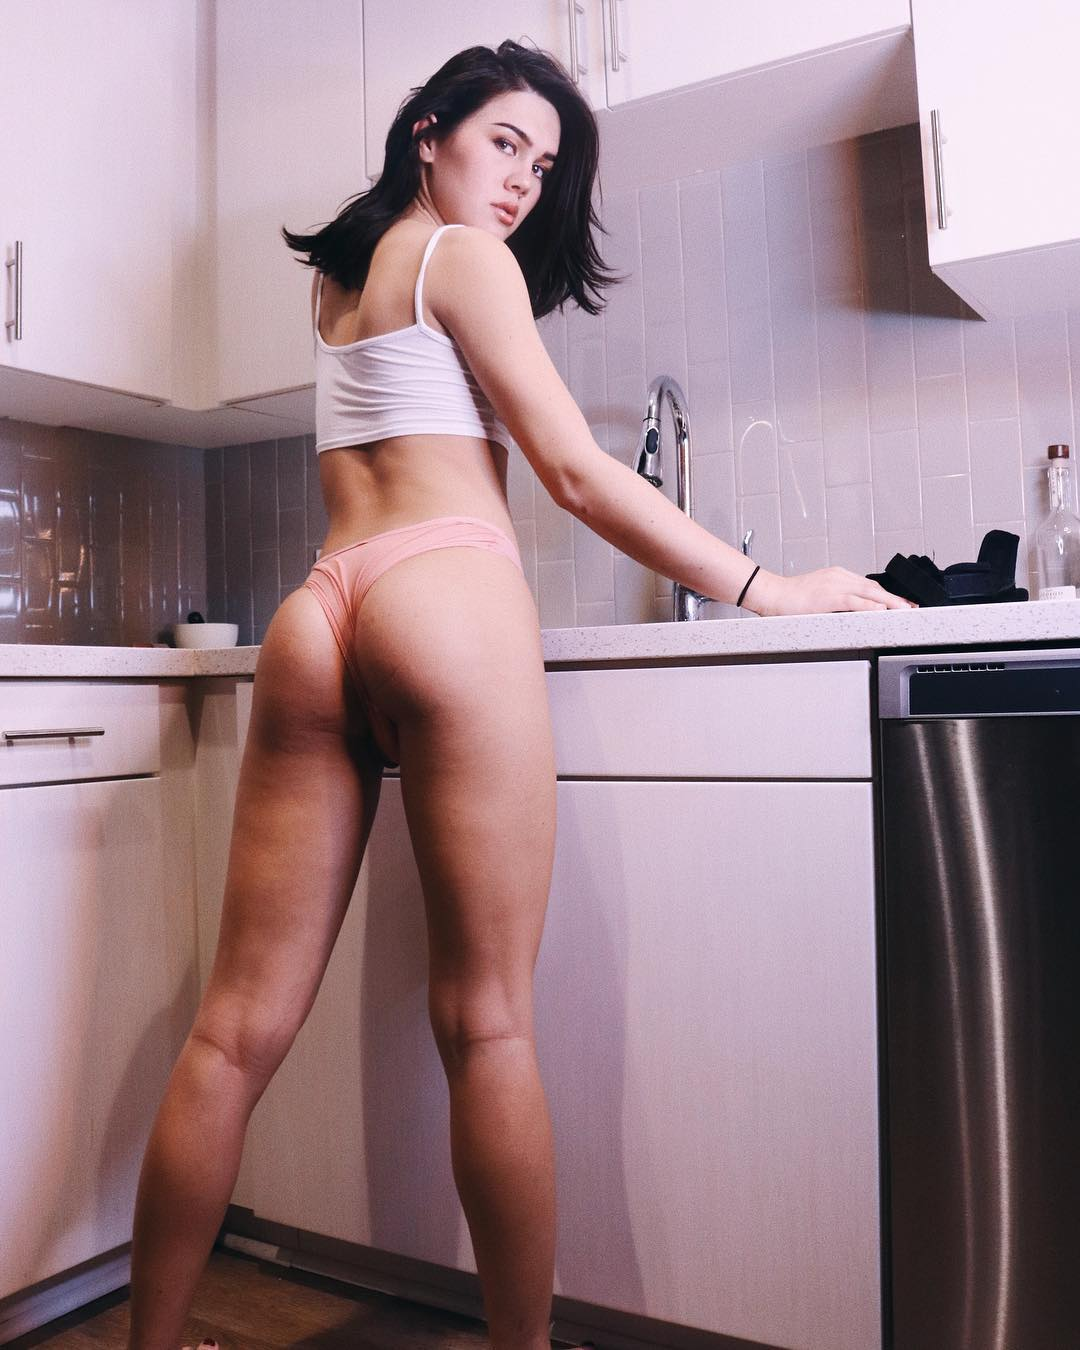 Trap Daisy Taylor cleaning in underwear